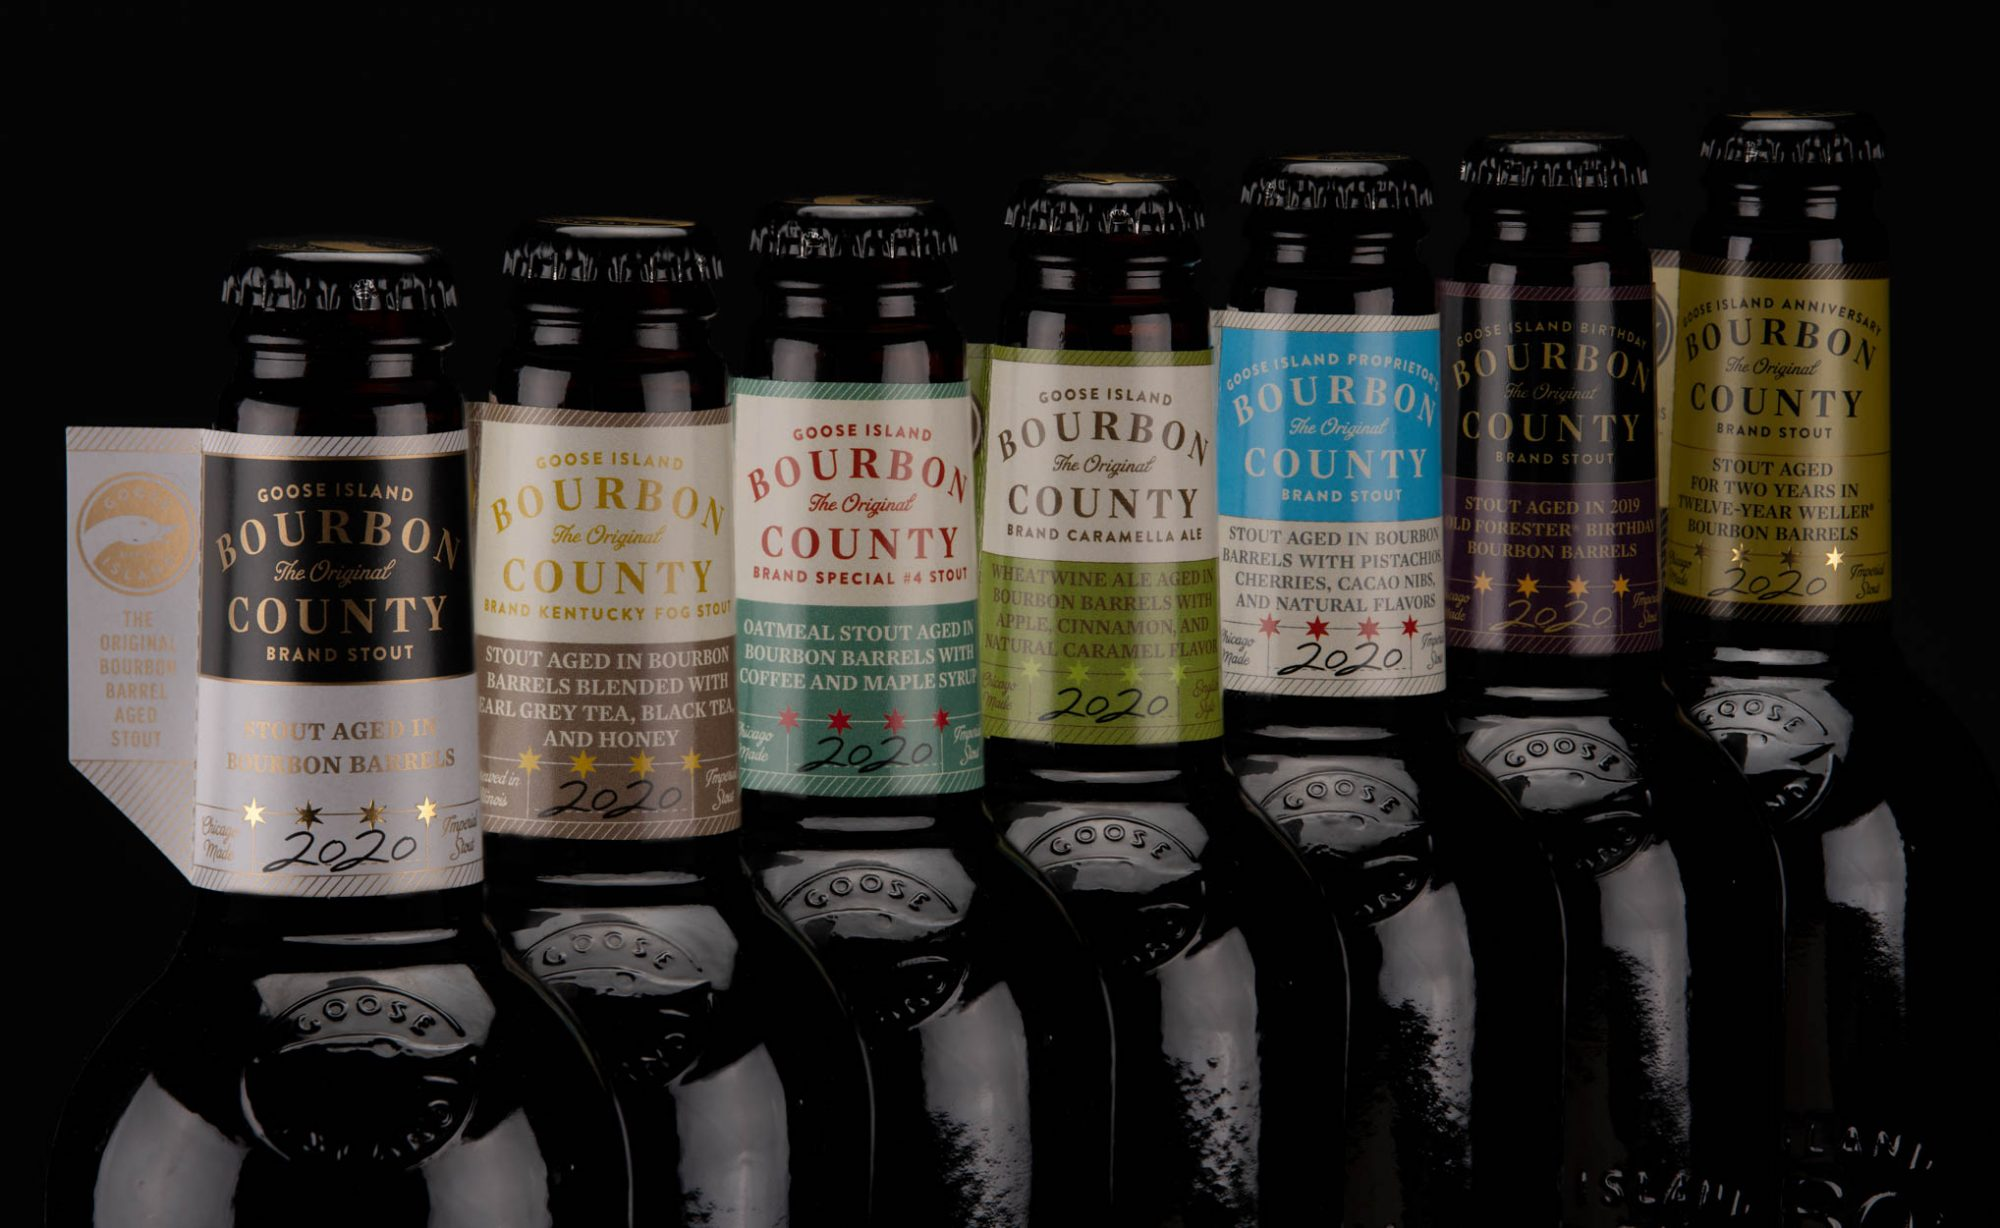 Lineup of Bourbon County Stout Bottles